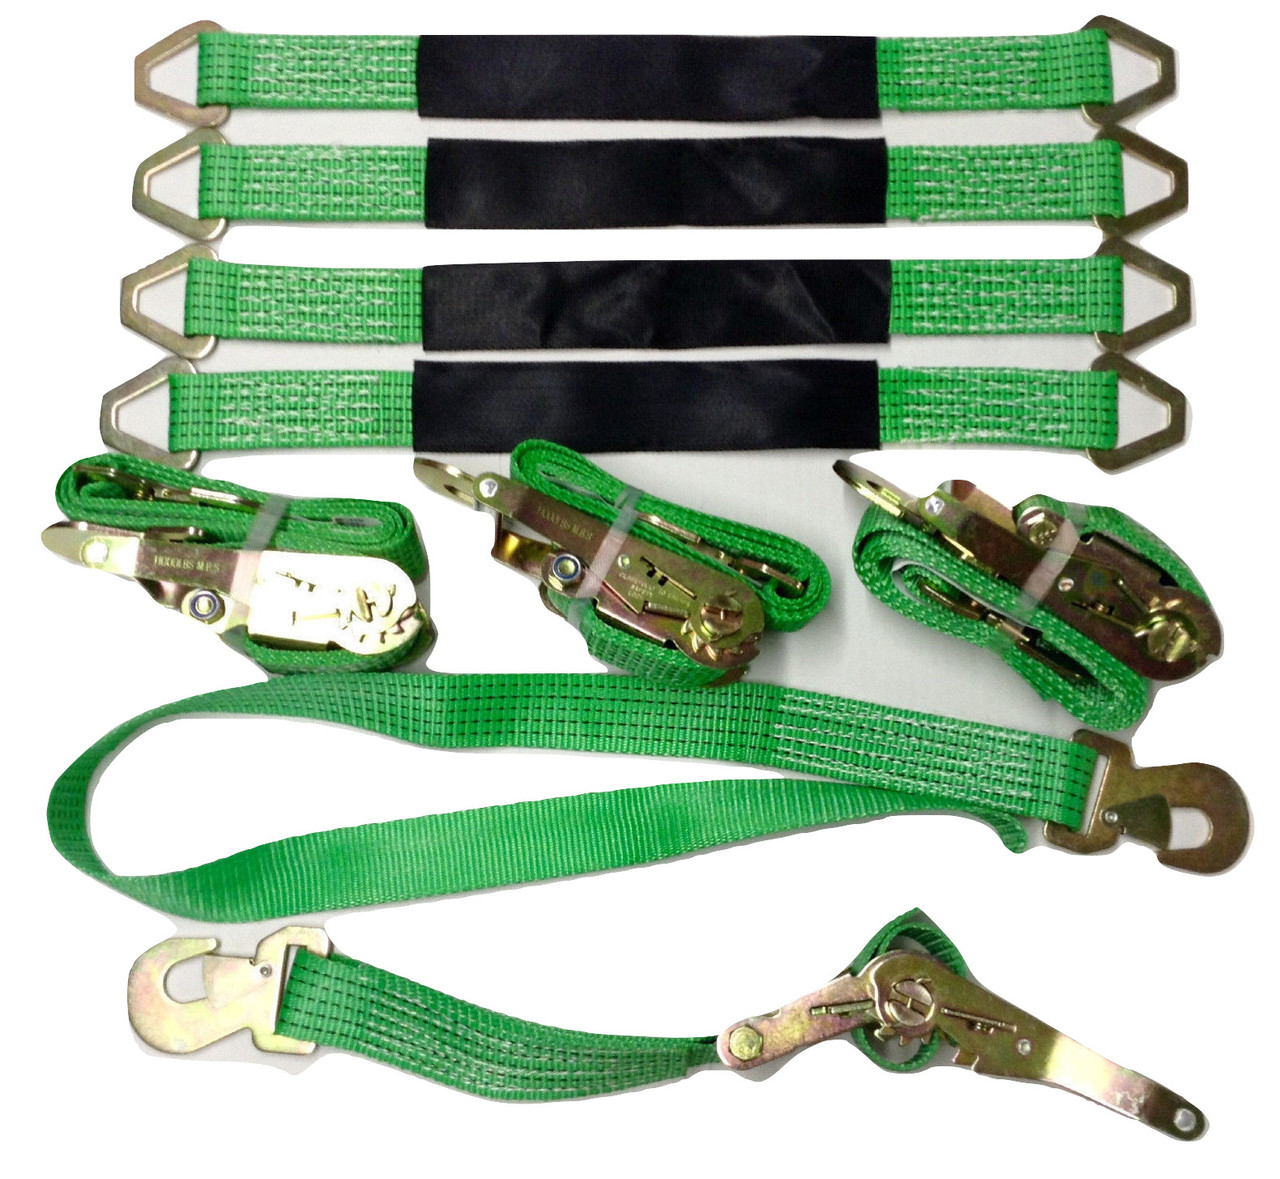 4 Axle Strap Tie Downs 24 Long and 4 Ratchet Tow Straps Car Haulers